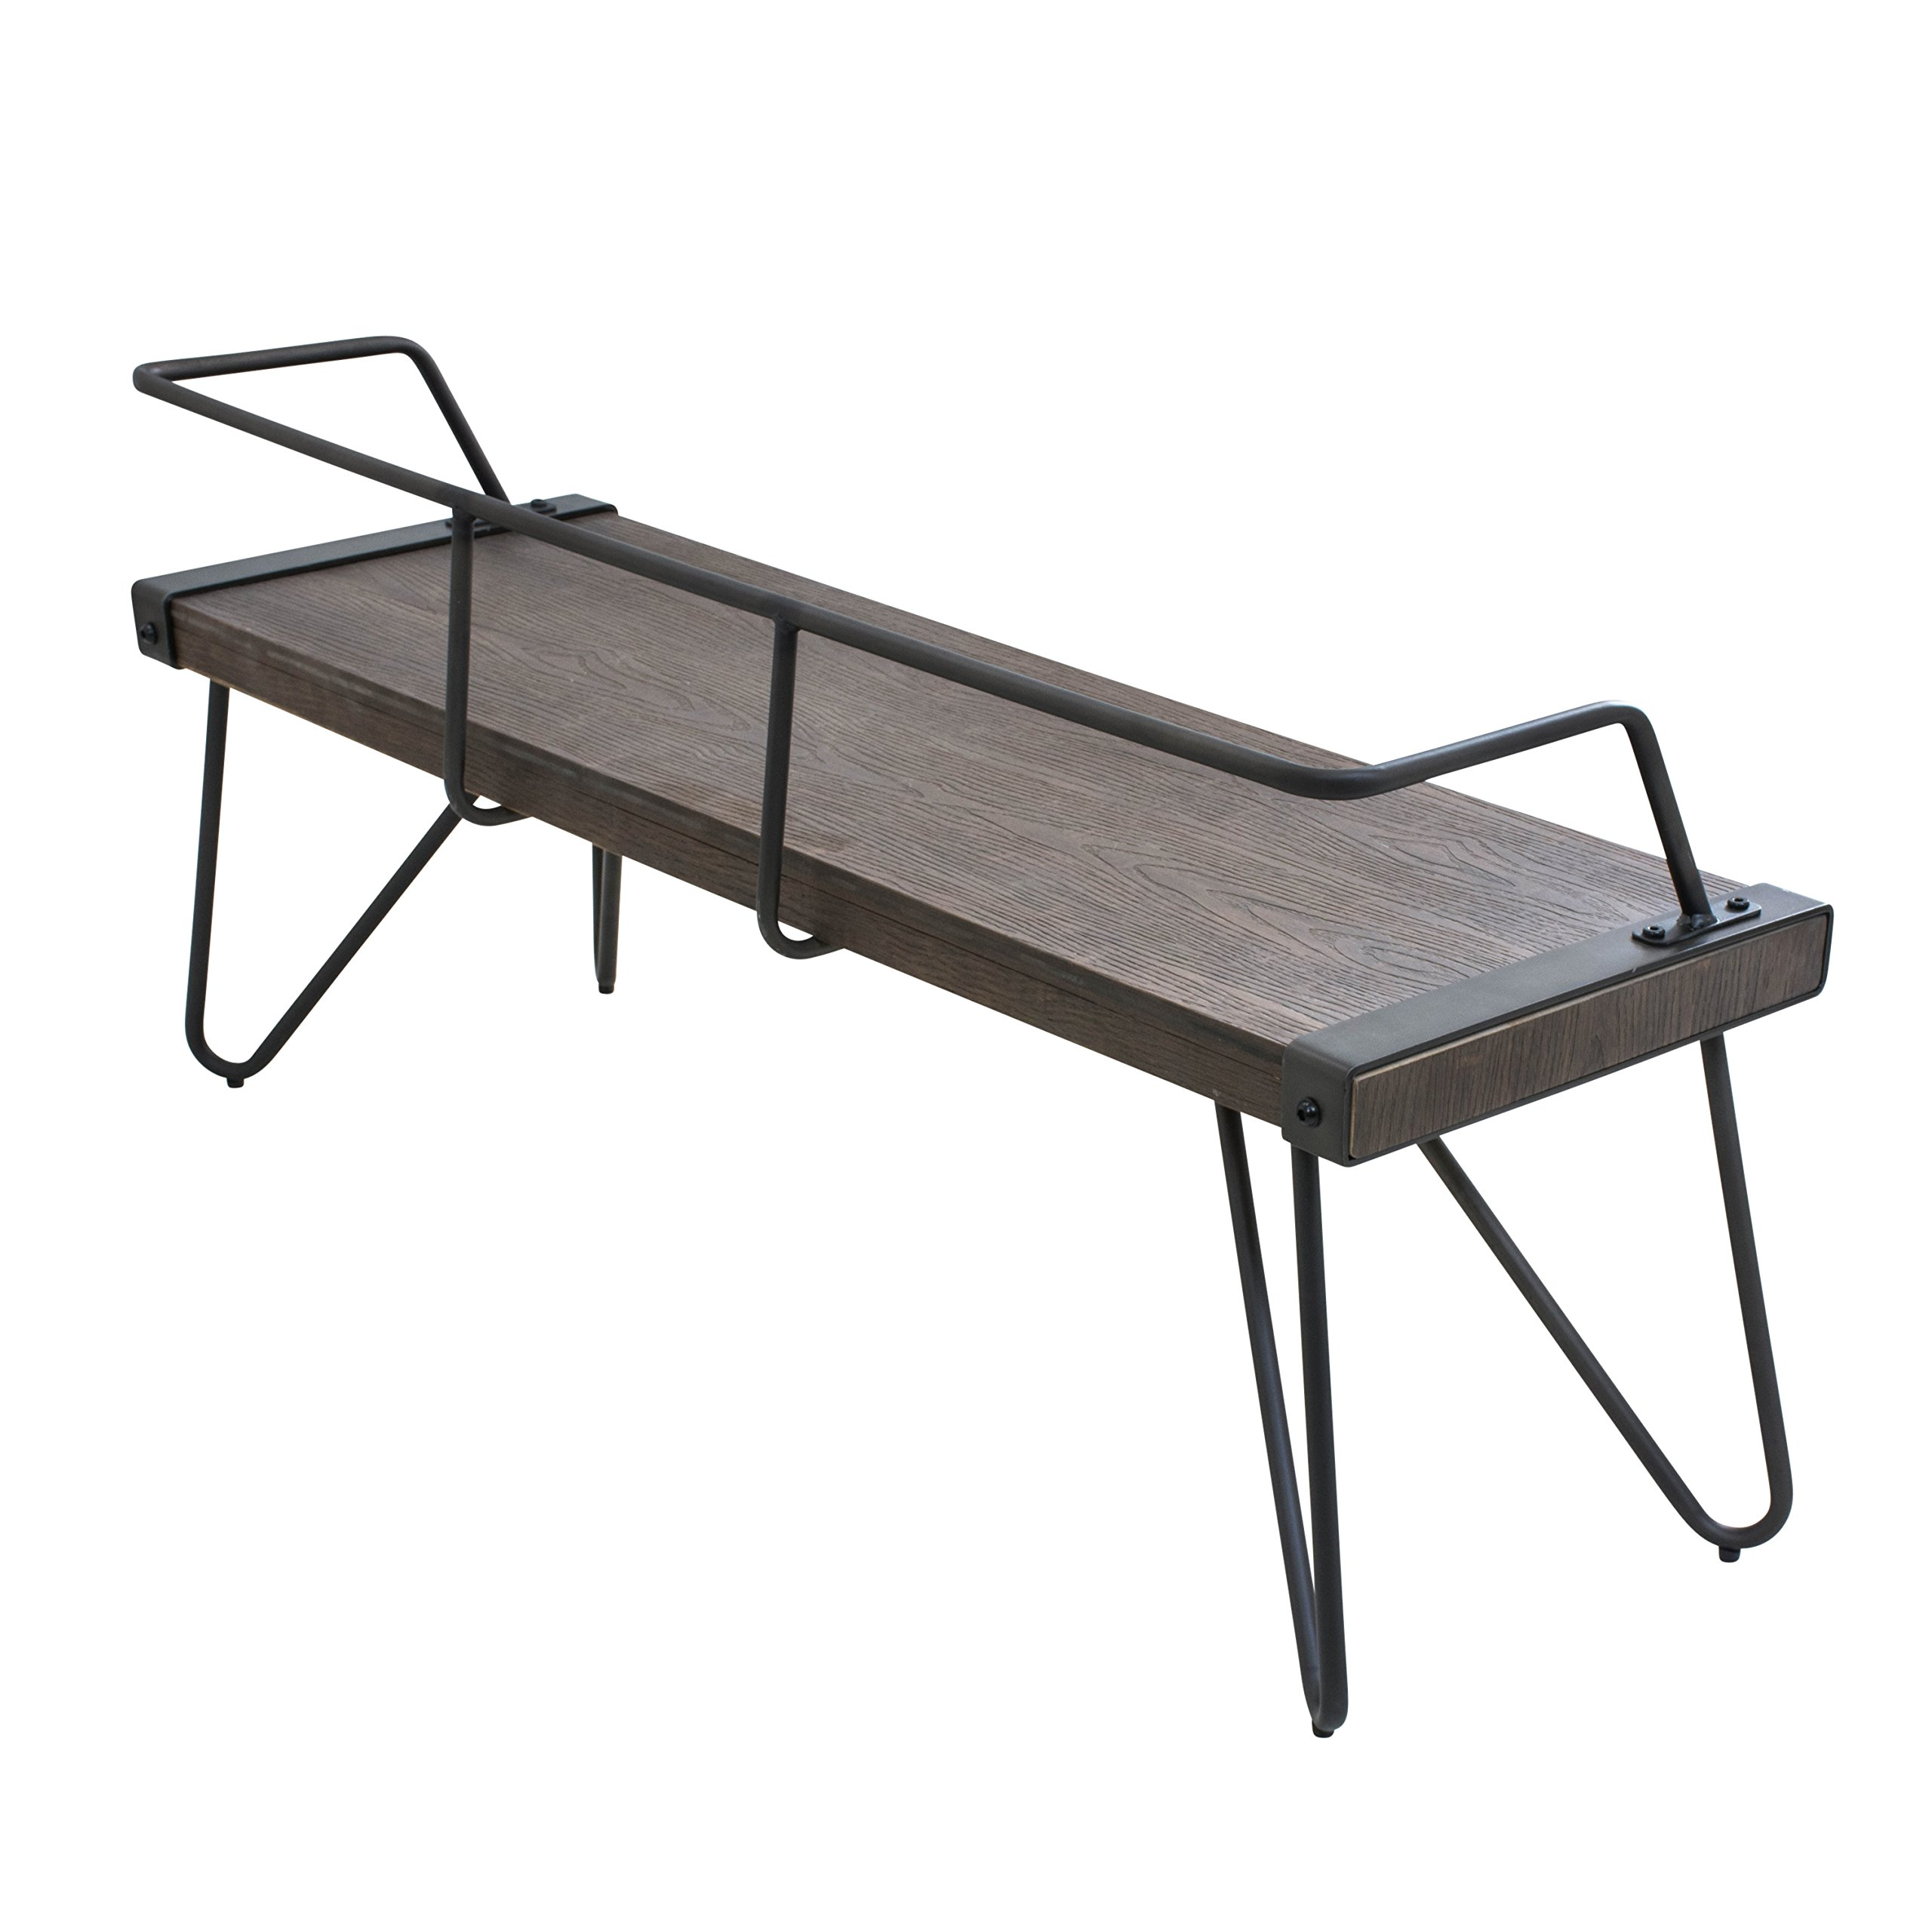 WOYBR DC-STFBEN WL+AN Wood, Metal Stefani Bench by WOYBR (Image #3)